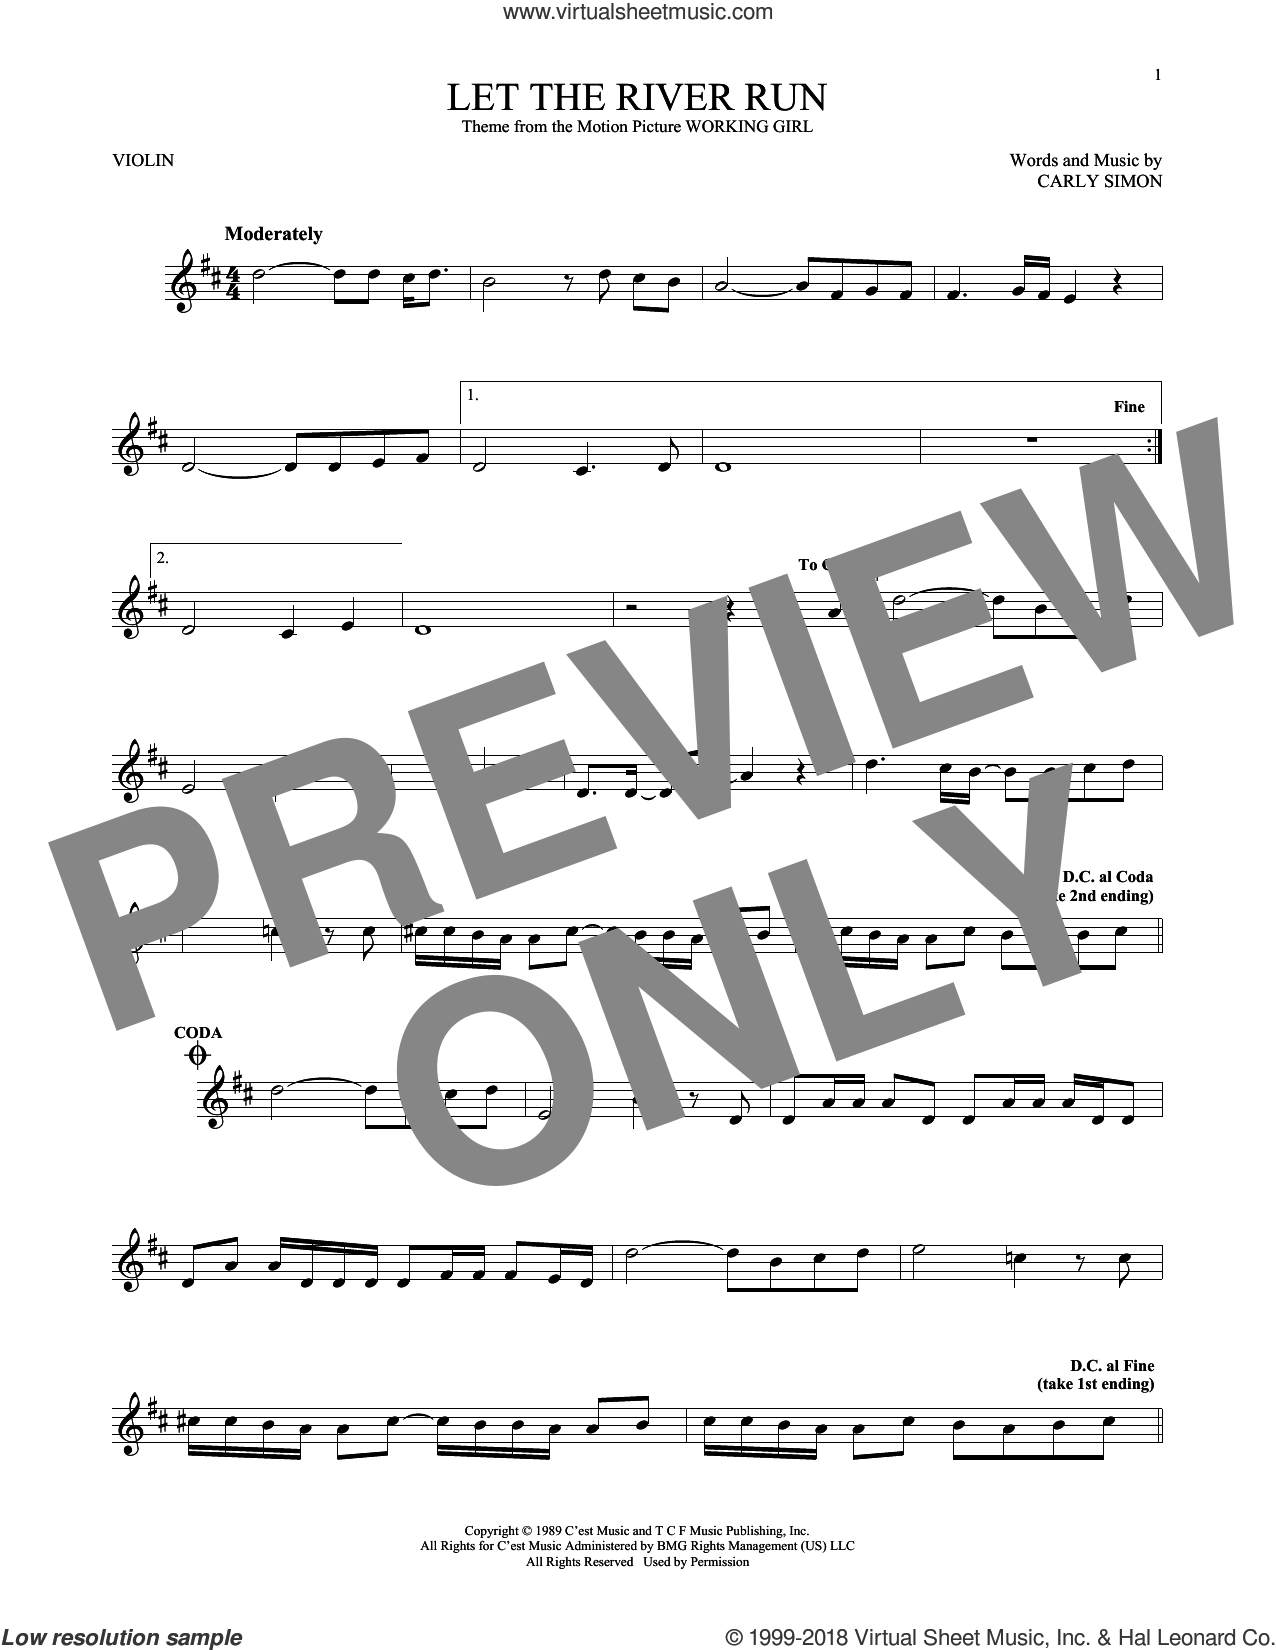 Let The River Run sheet music for violin solo by Carly Simon, intermediate skill level